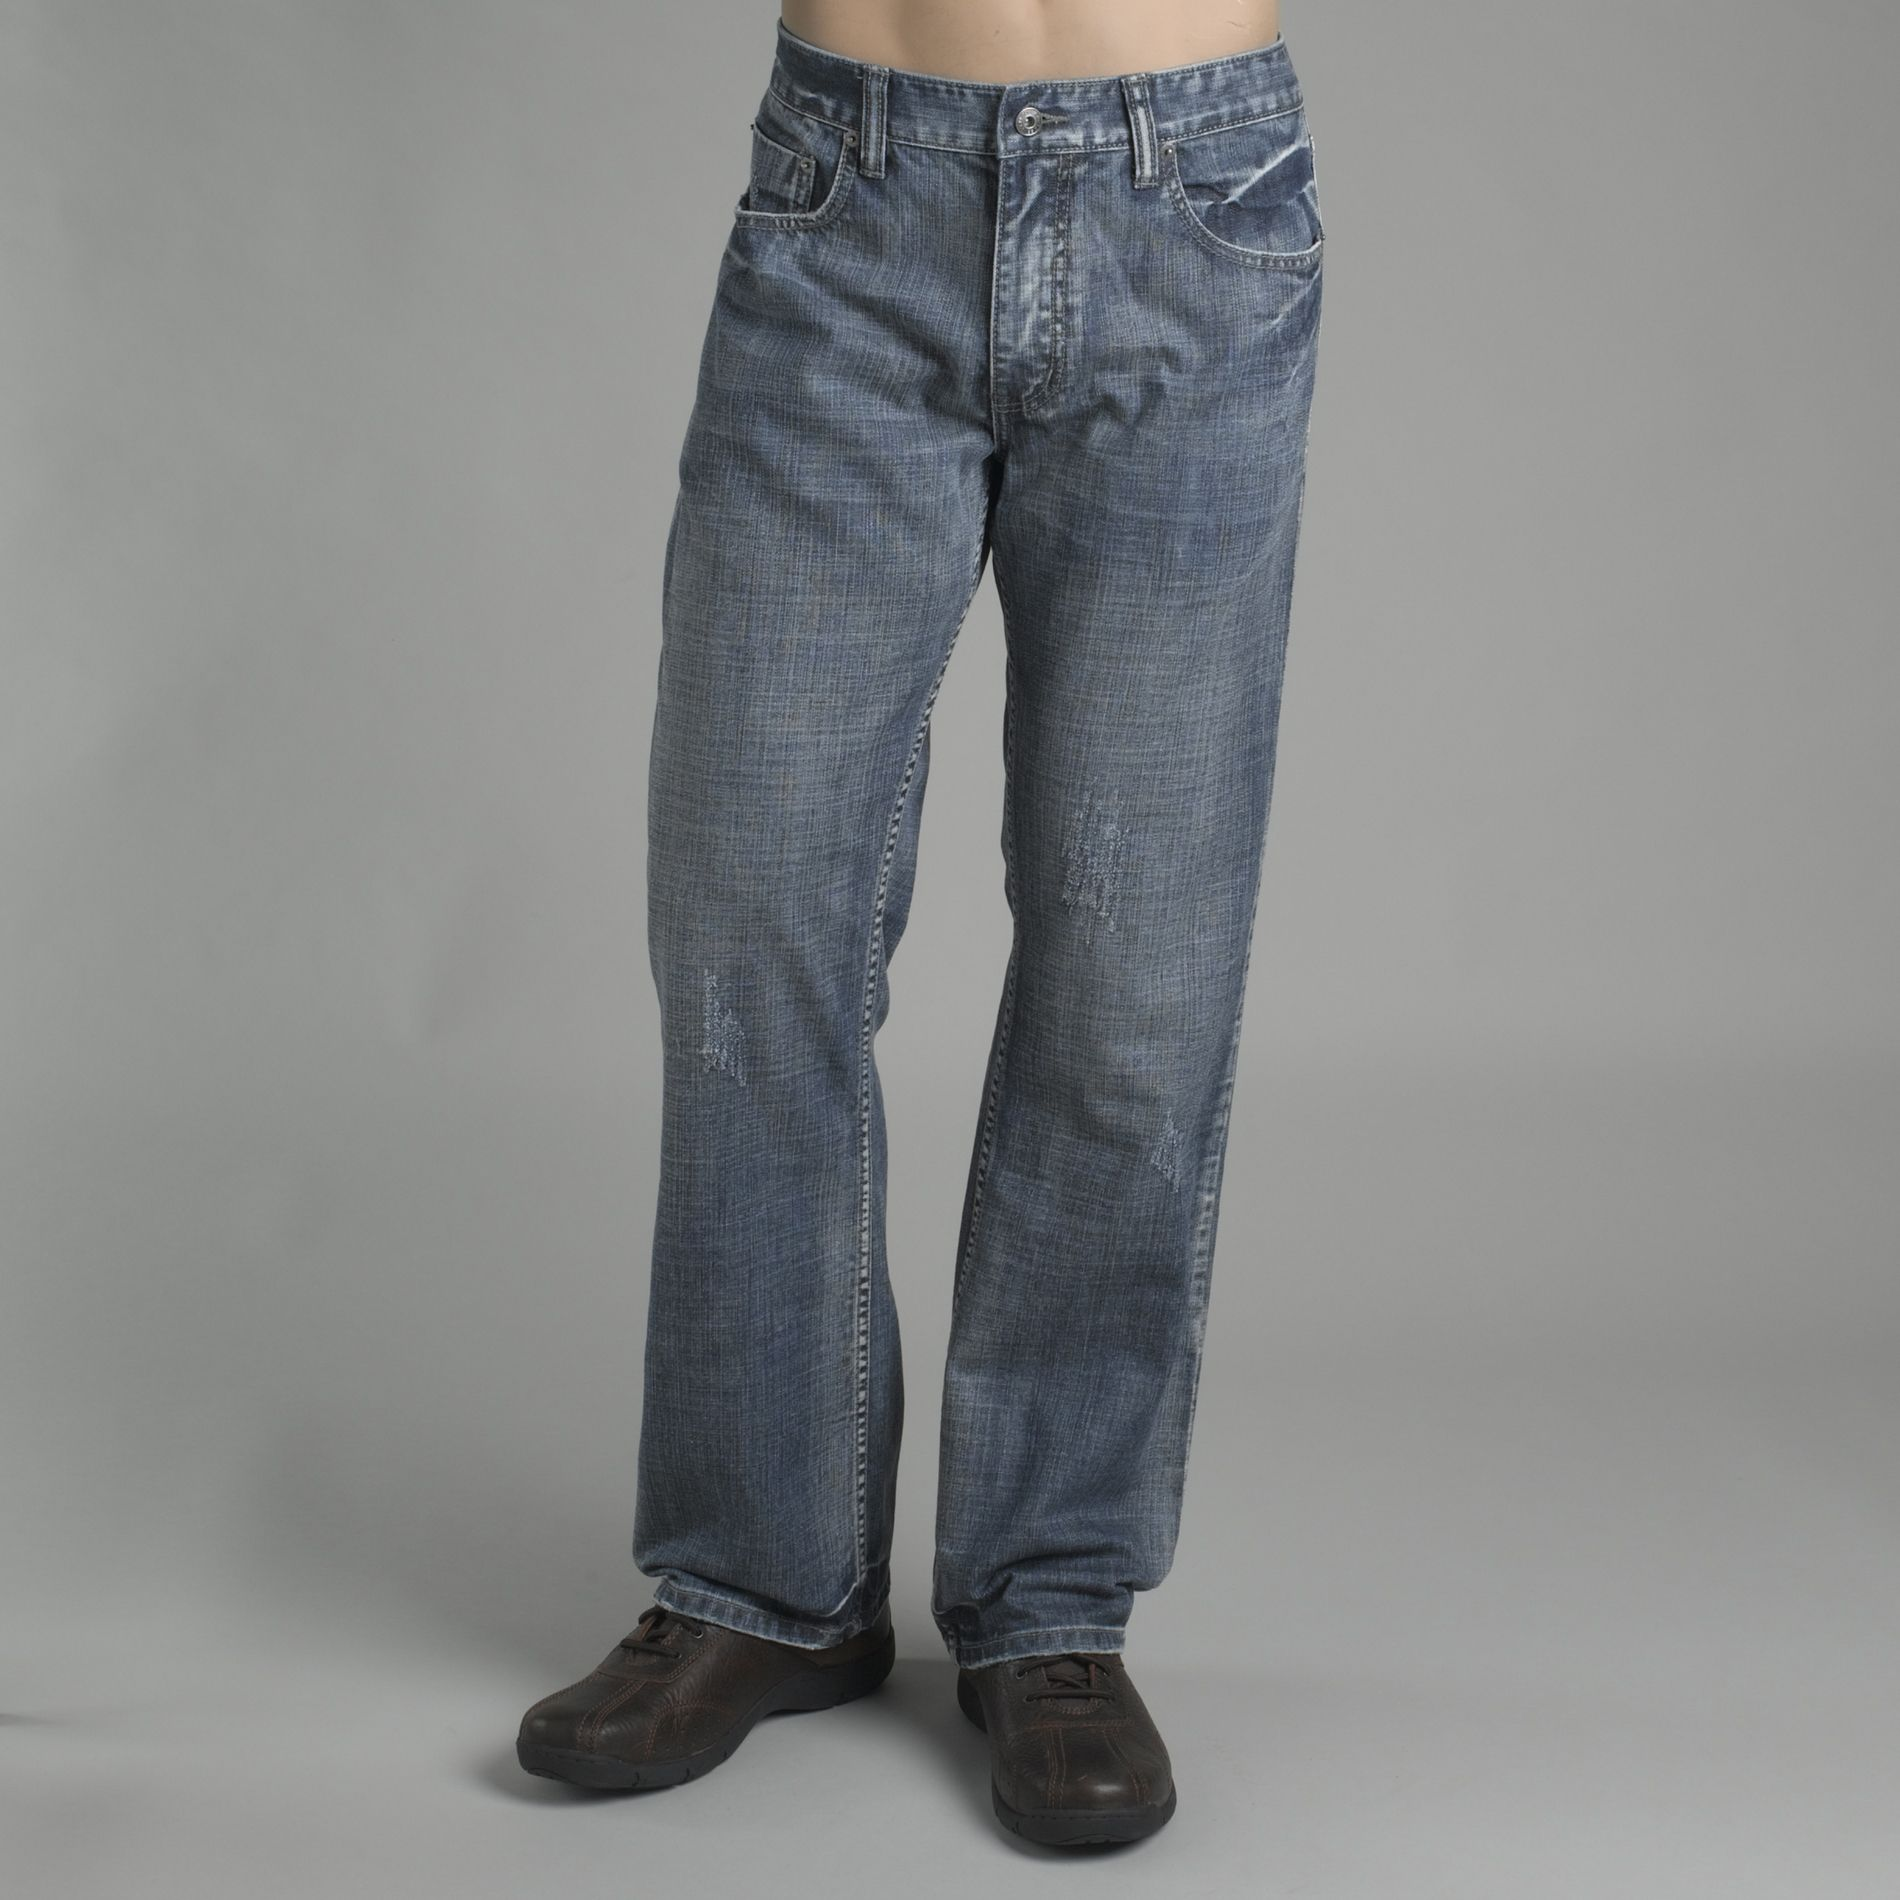 Route 66 Young Men's Distressed Slim Boot Jeans at Kmart.com